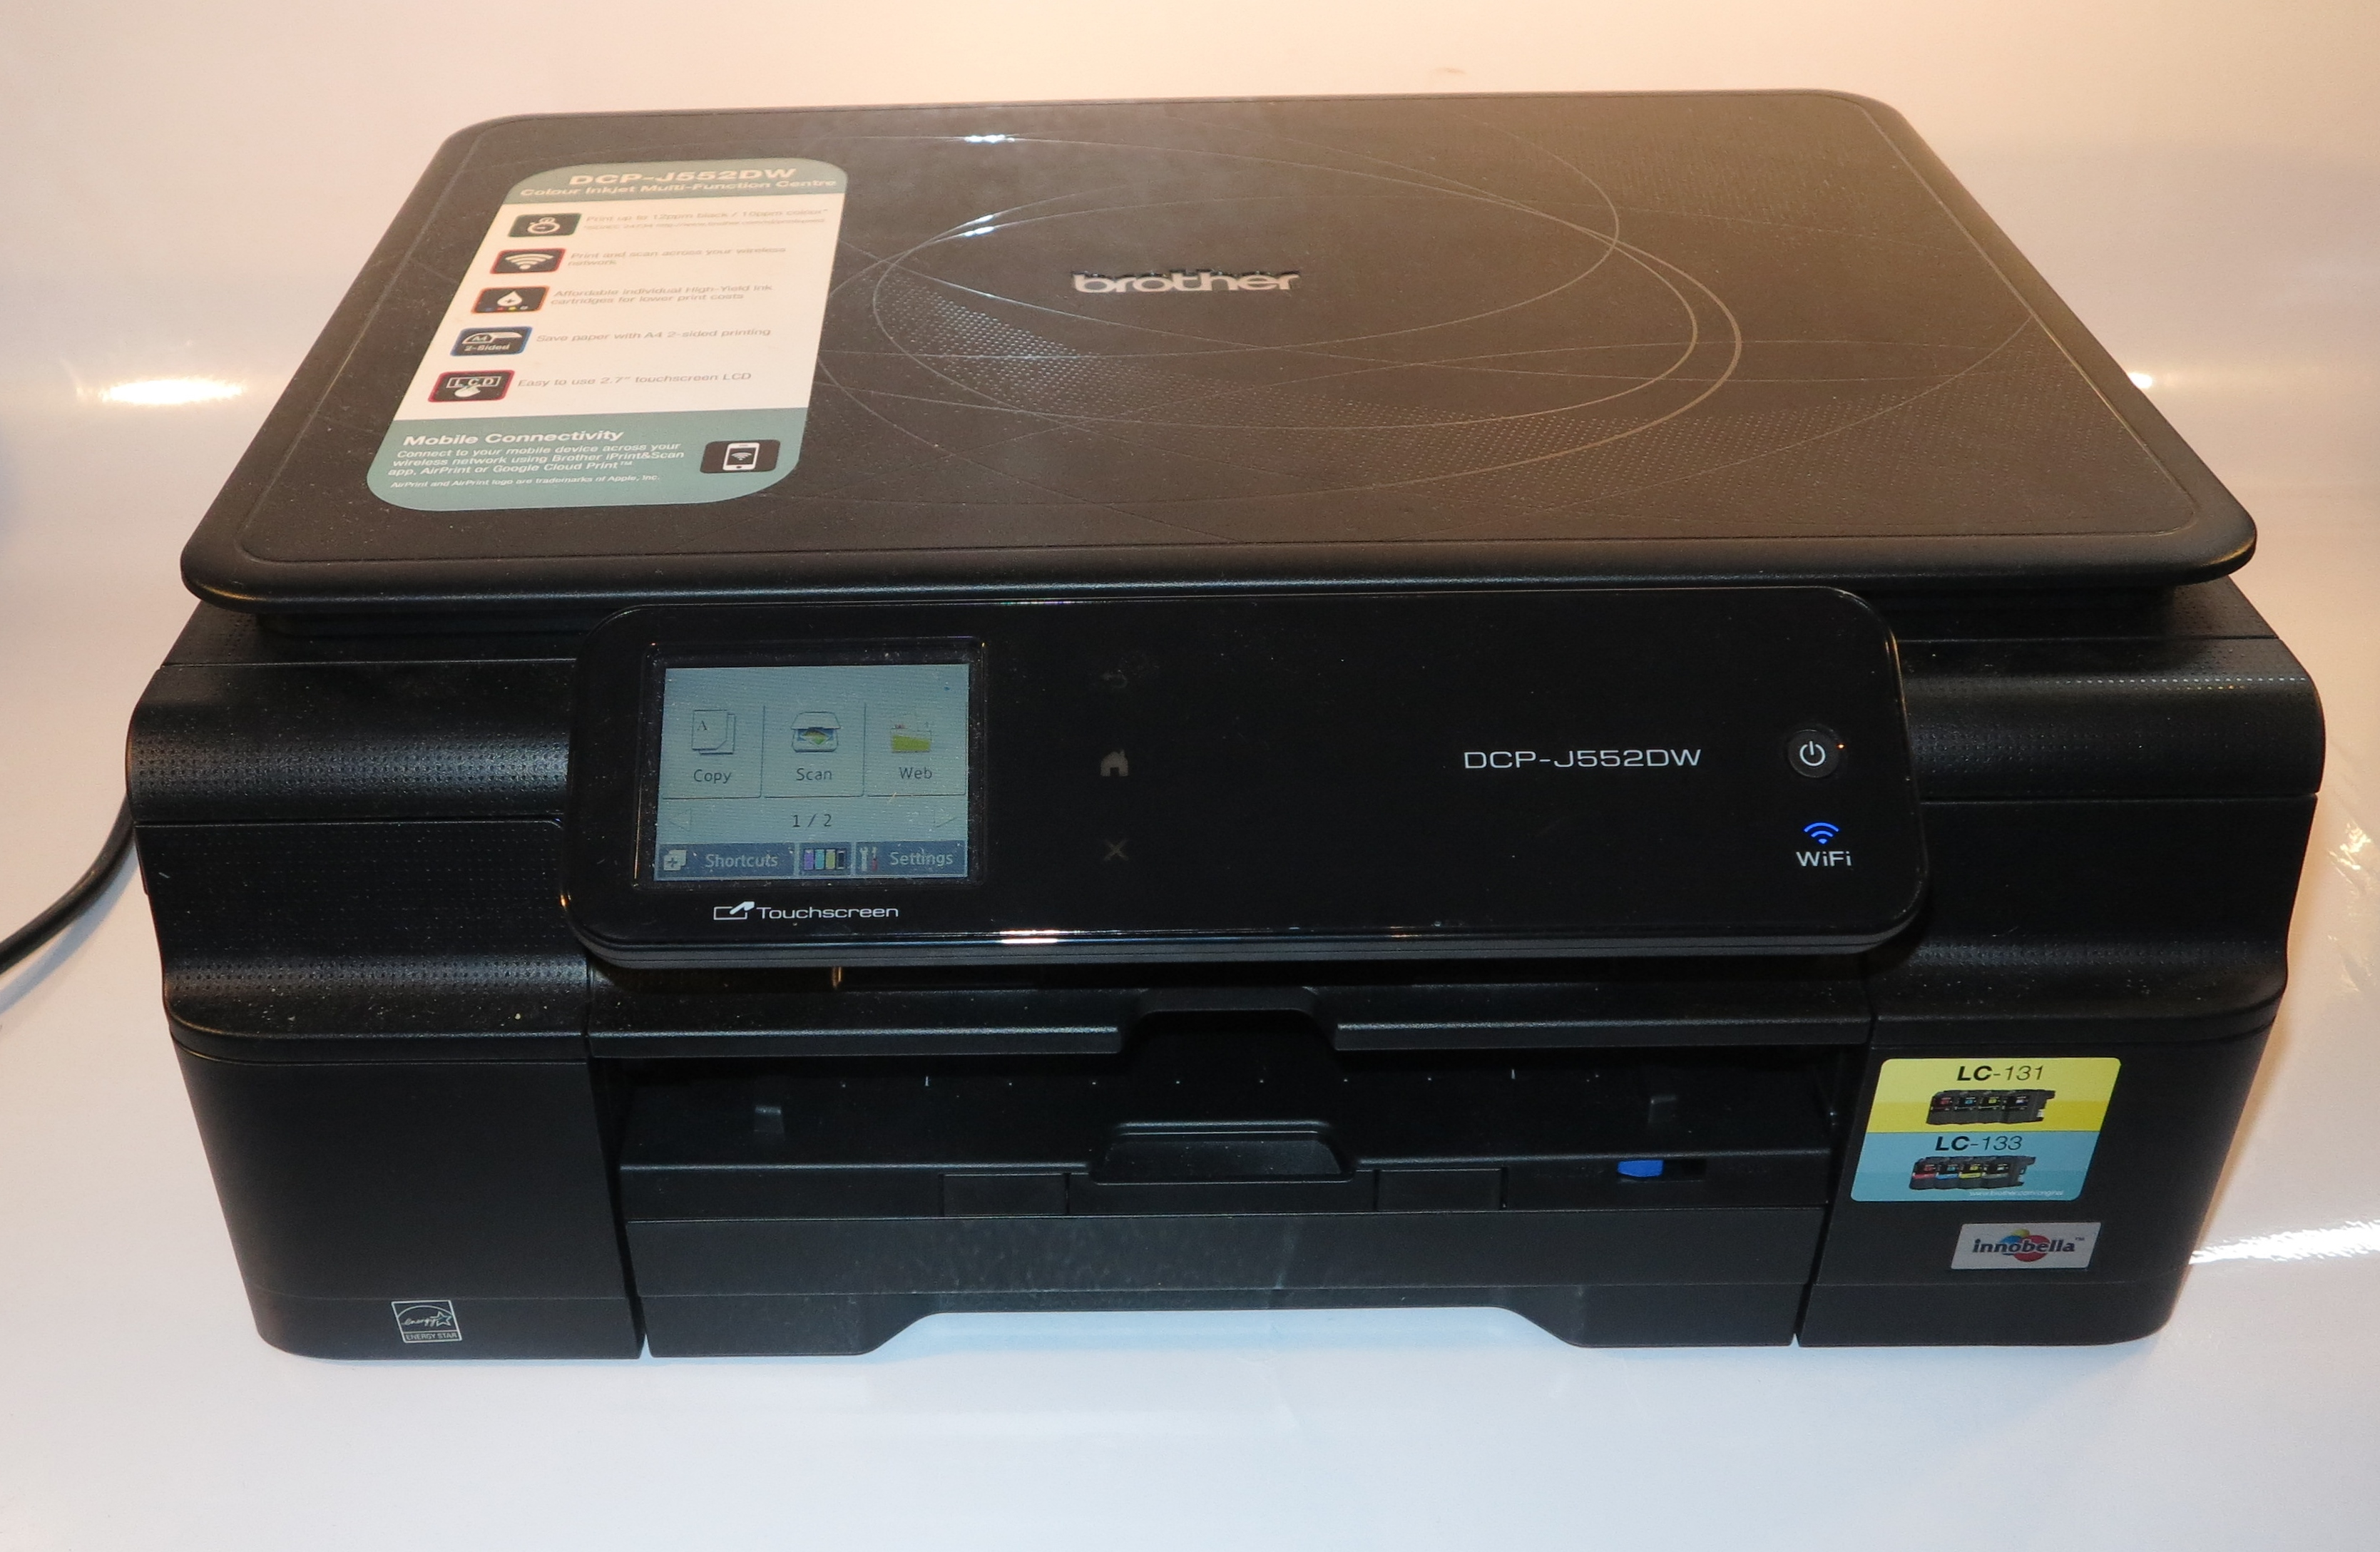 Brother DCP-J552DW multifunction printer